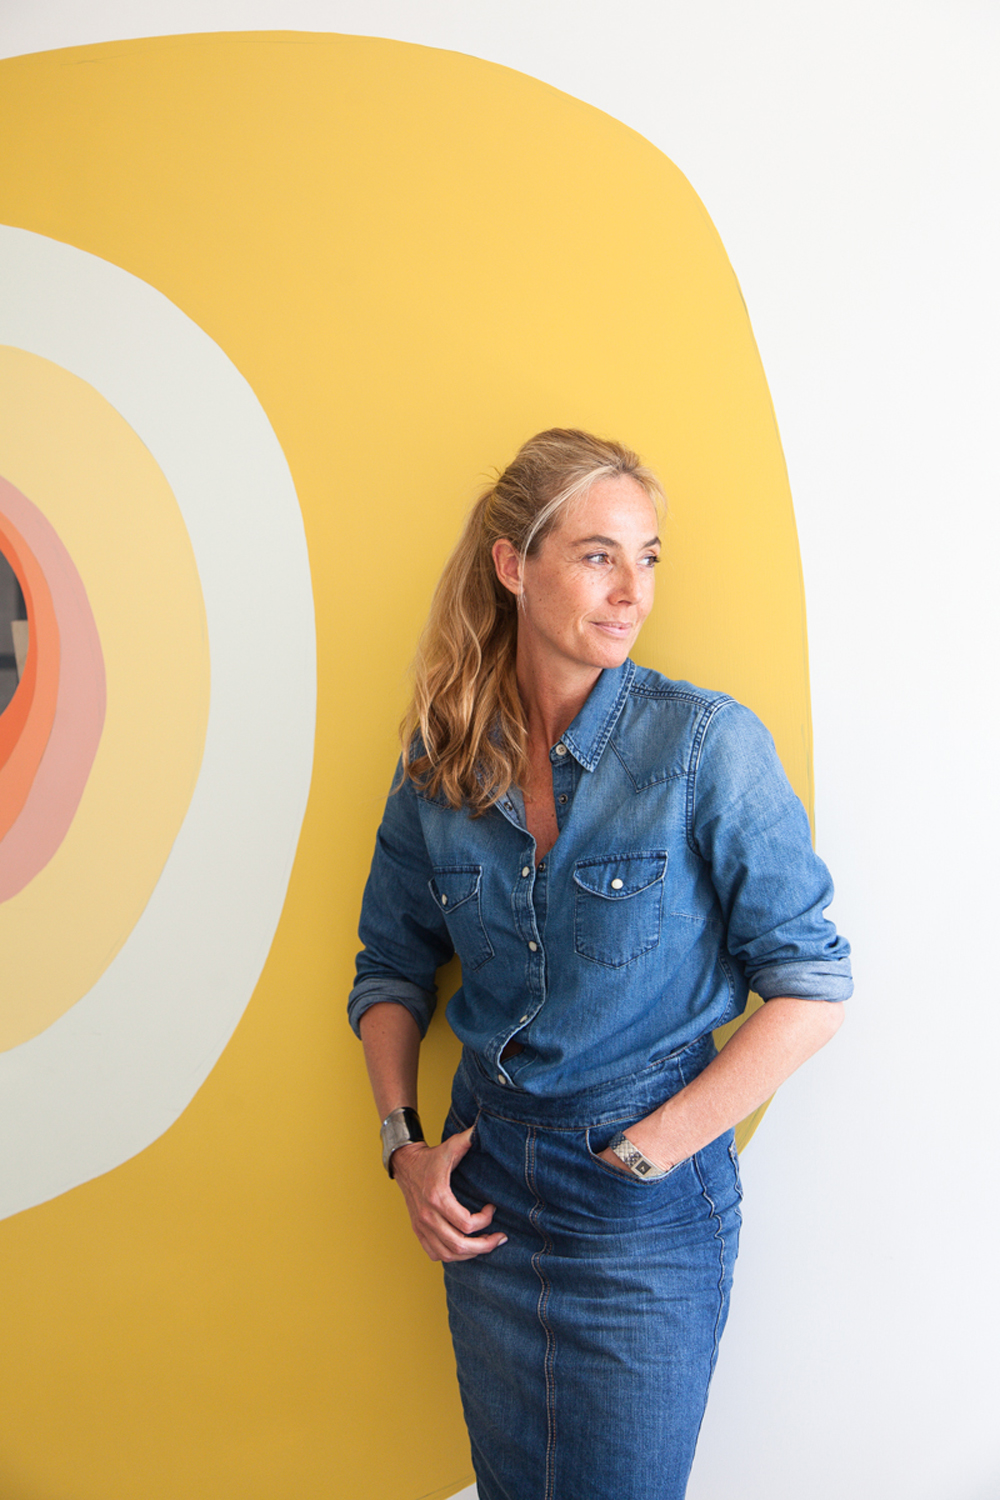 Eve Mercier – founder of Insight School of Interior Design Hong Kong